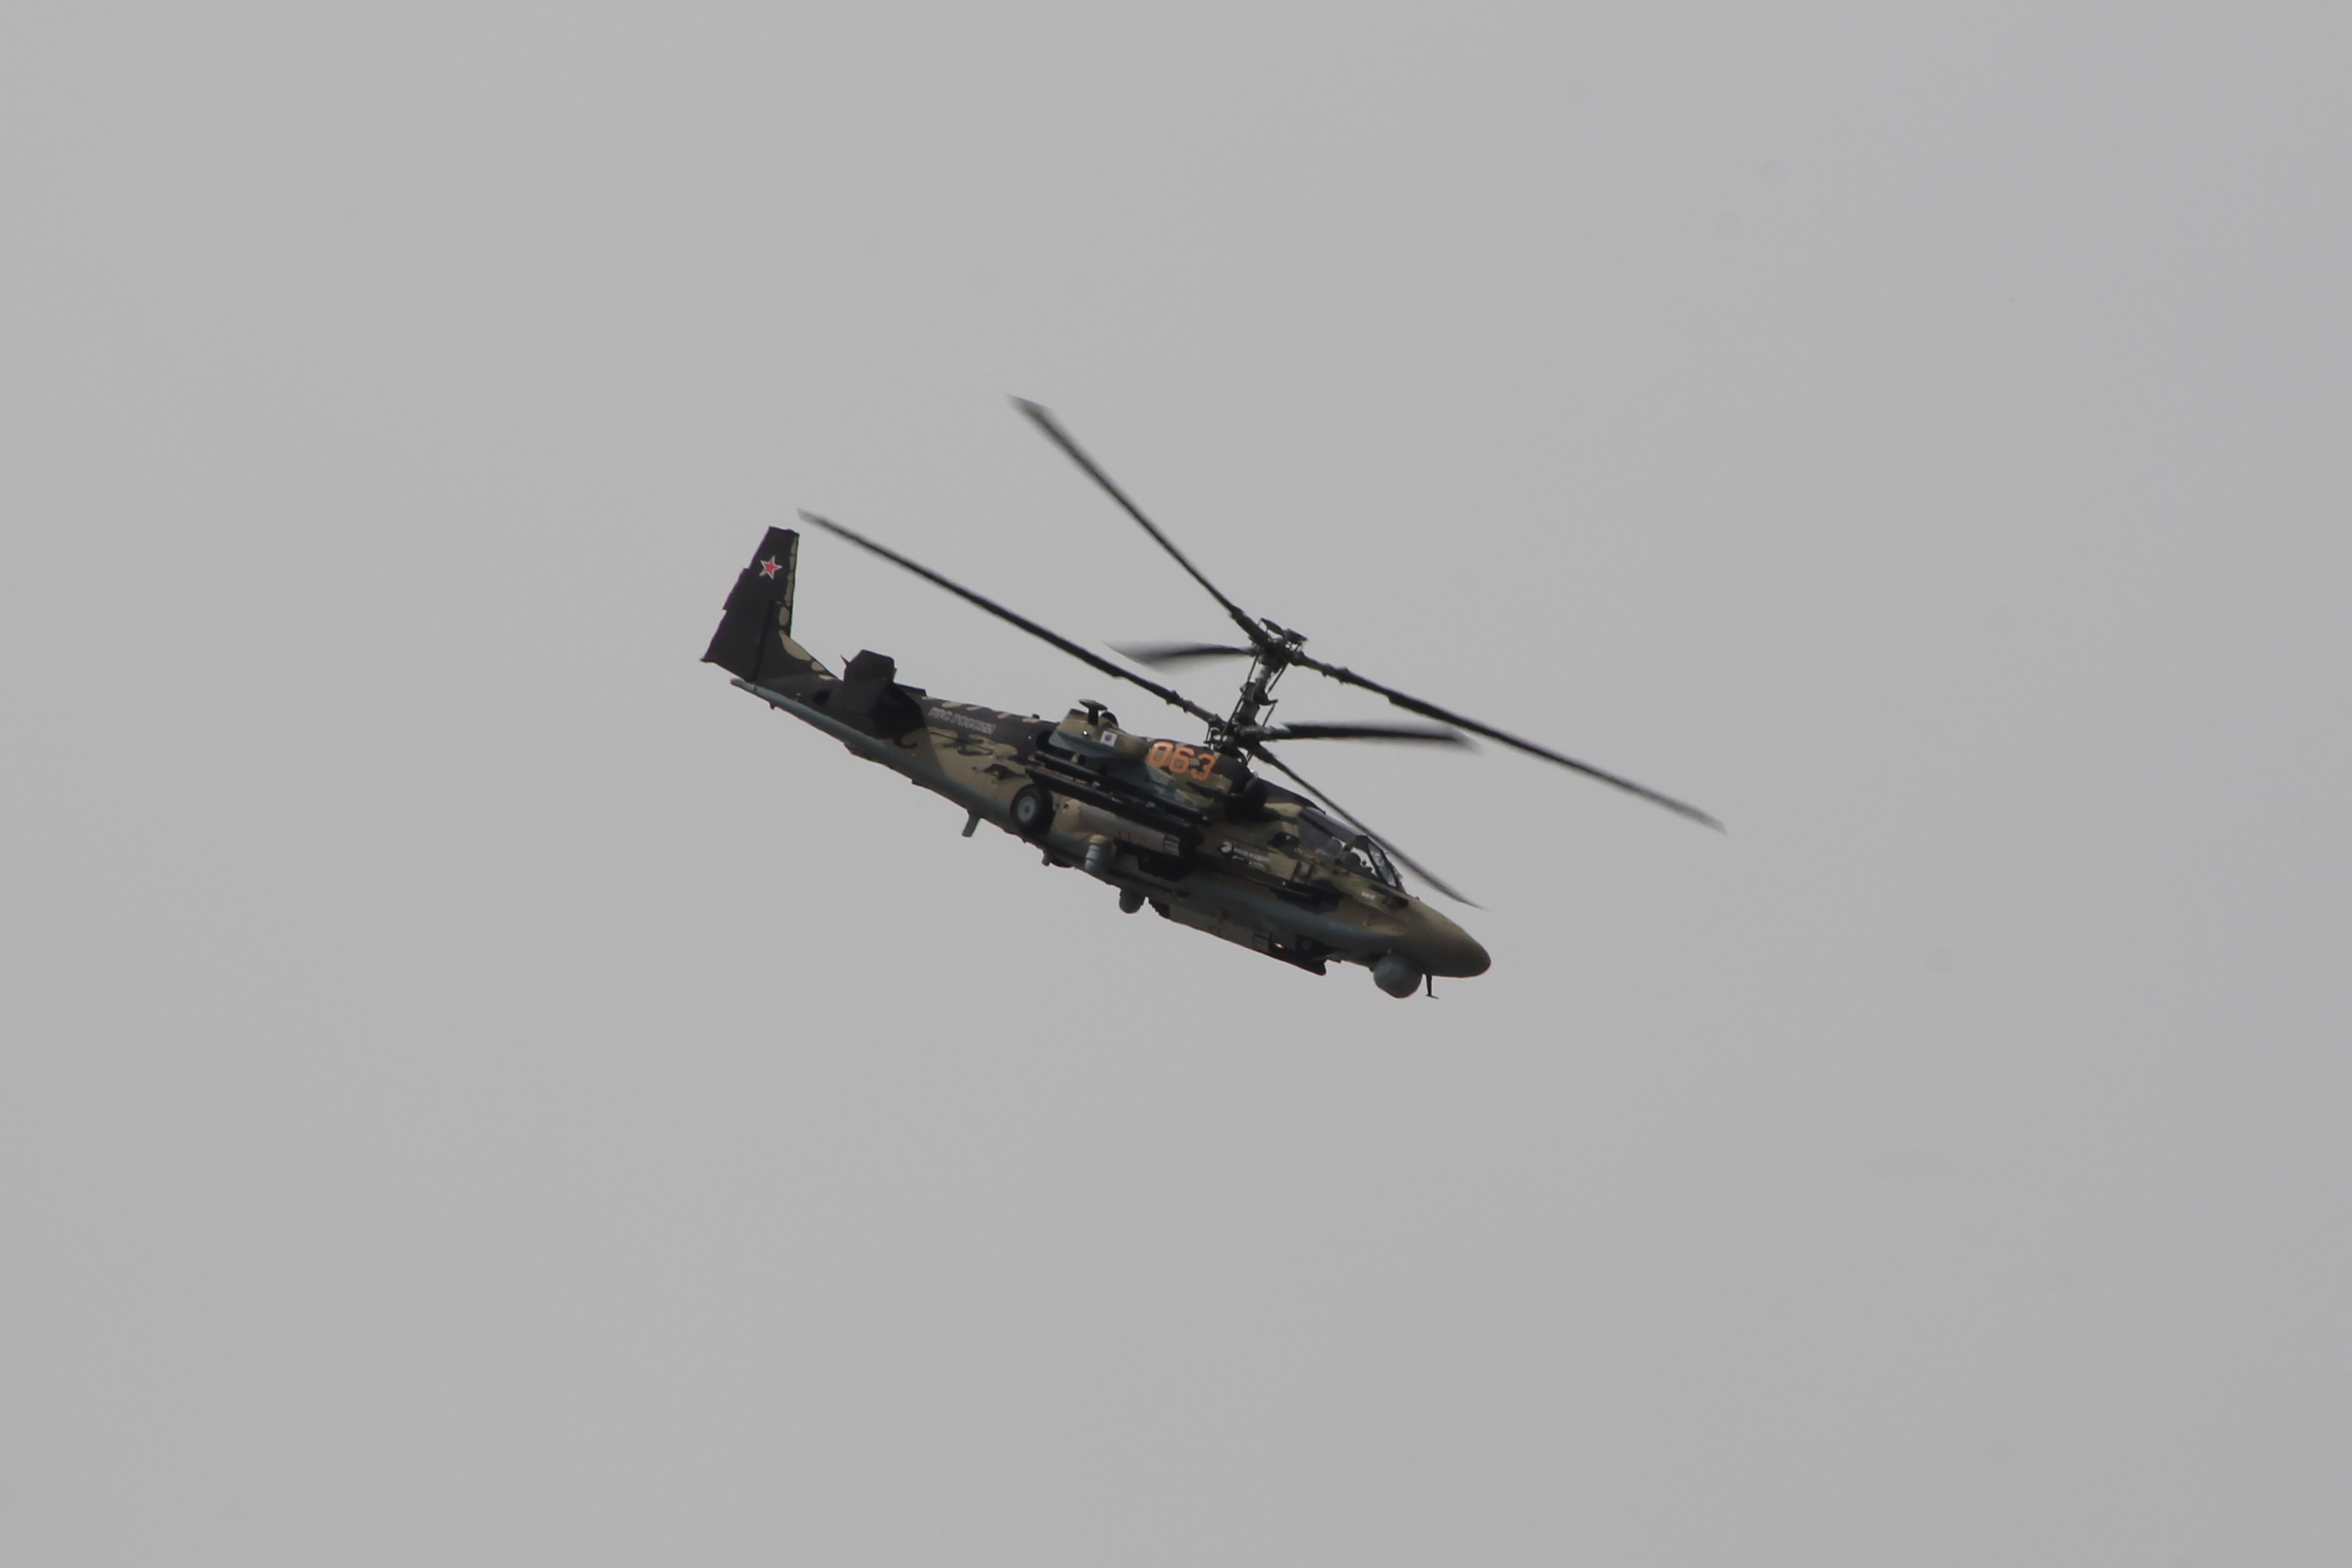 Demonstration of the Kamov Ka-52, first time in the West